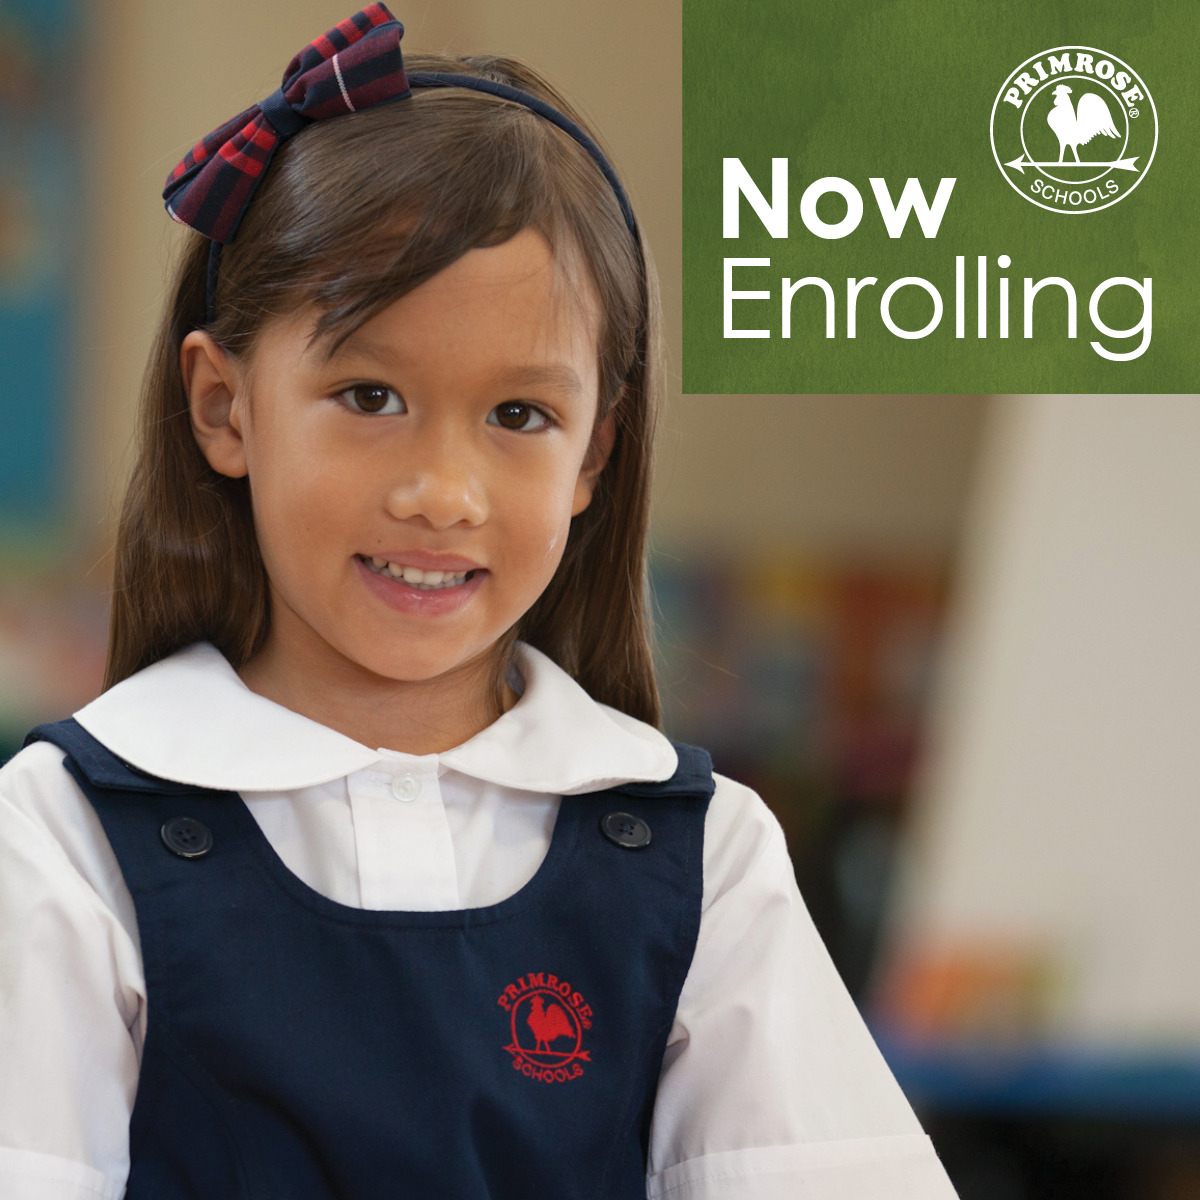 Now Enrolling with girl in Primrose uniform